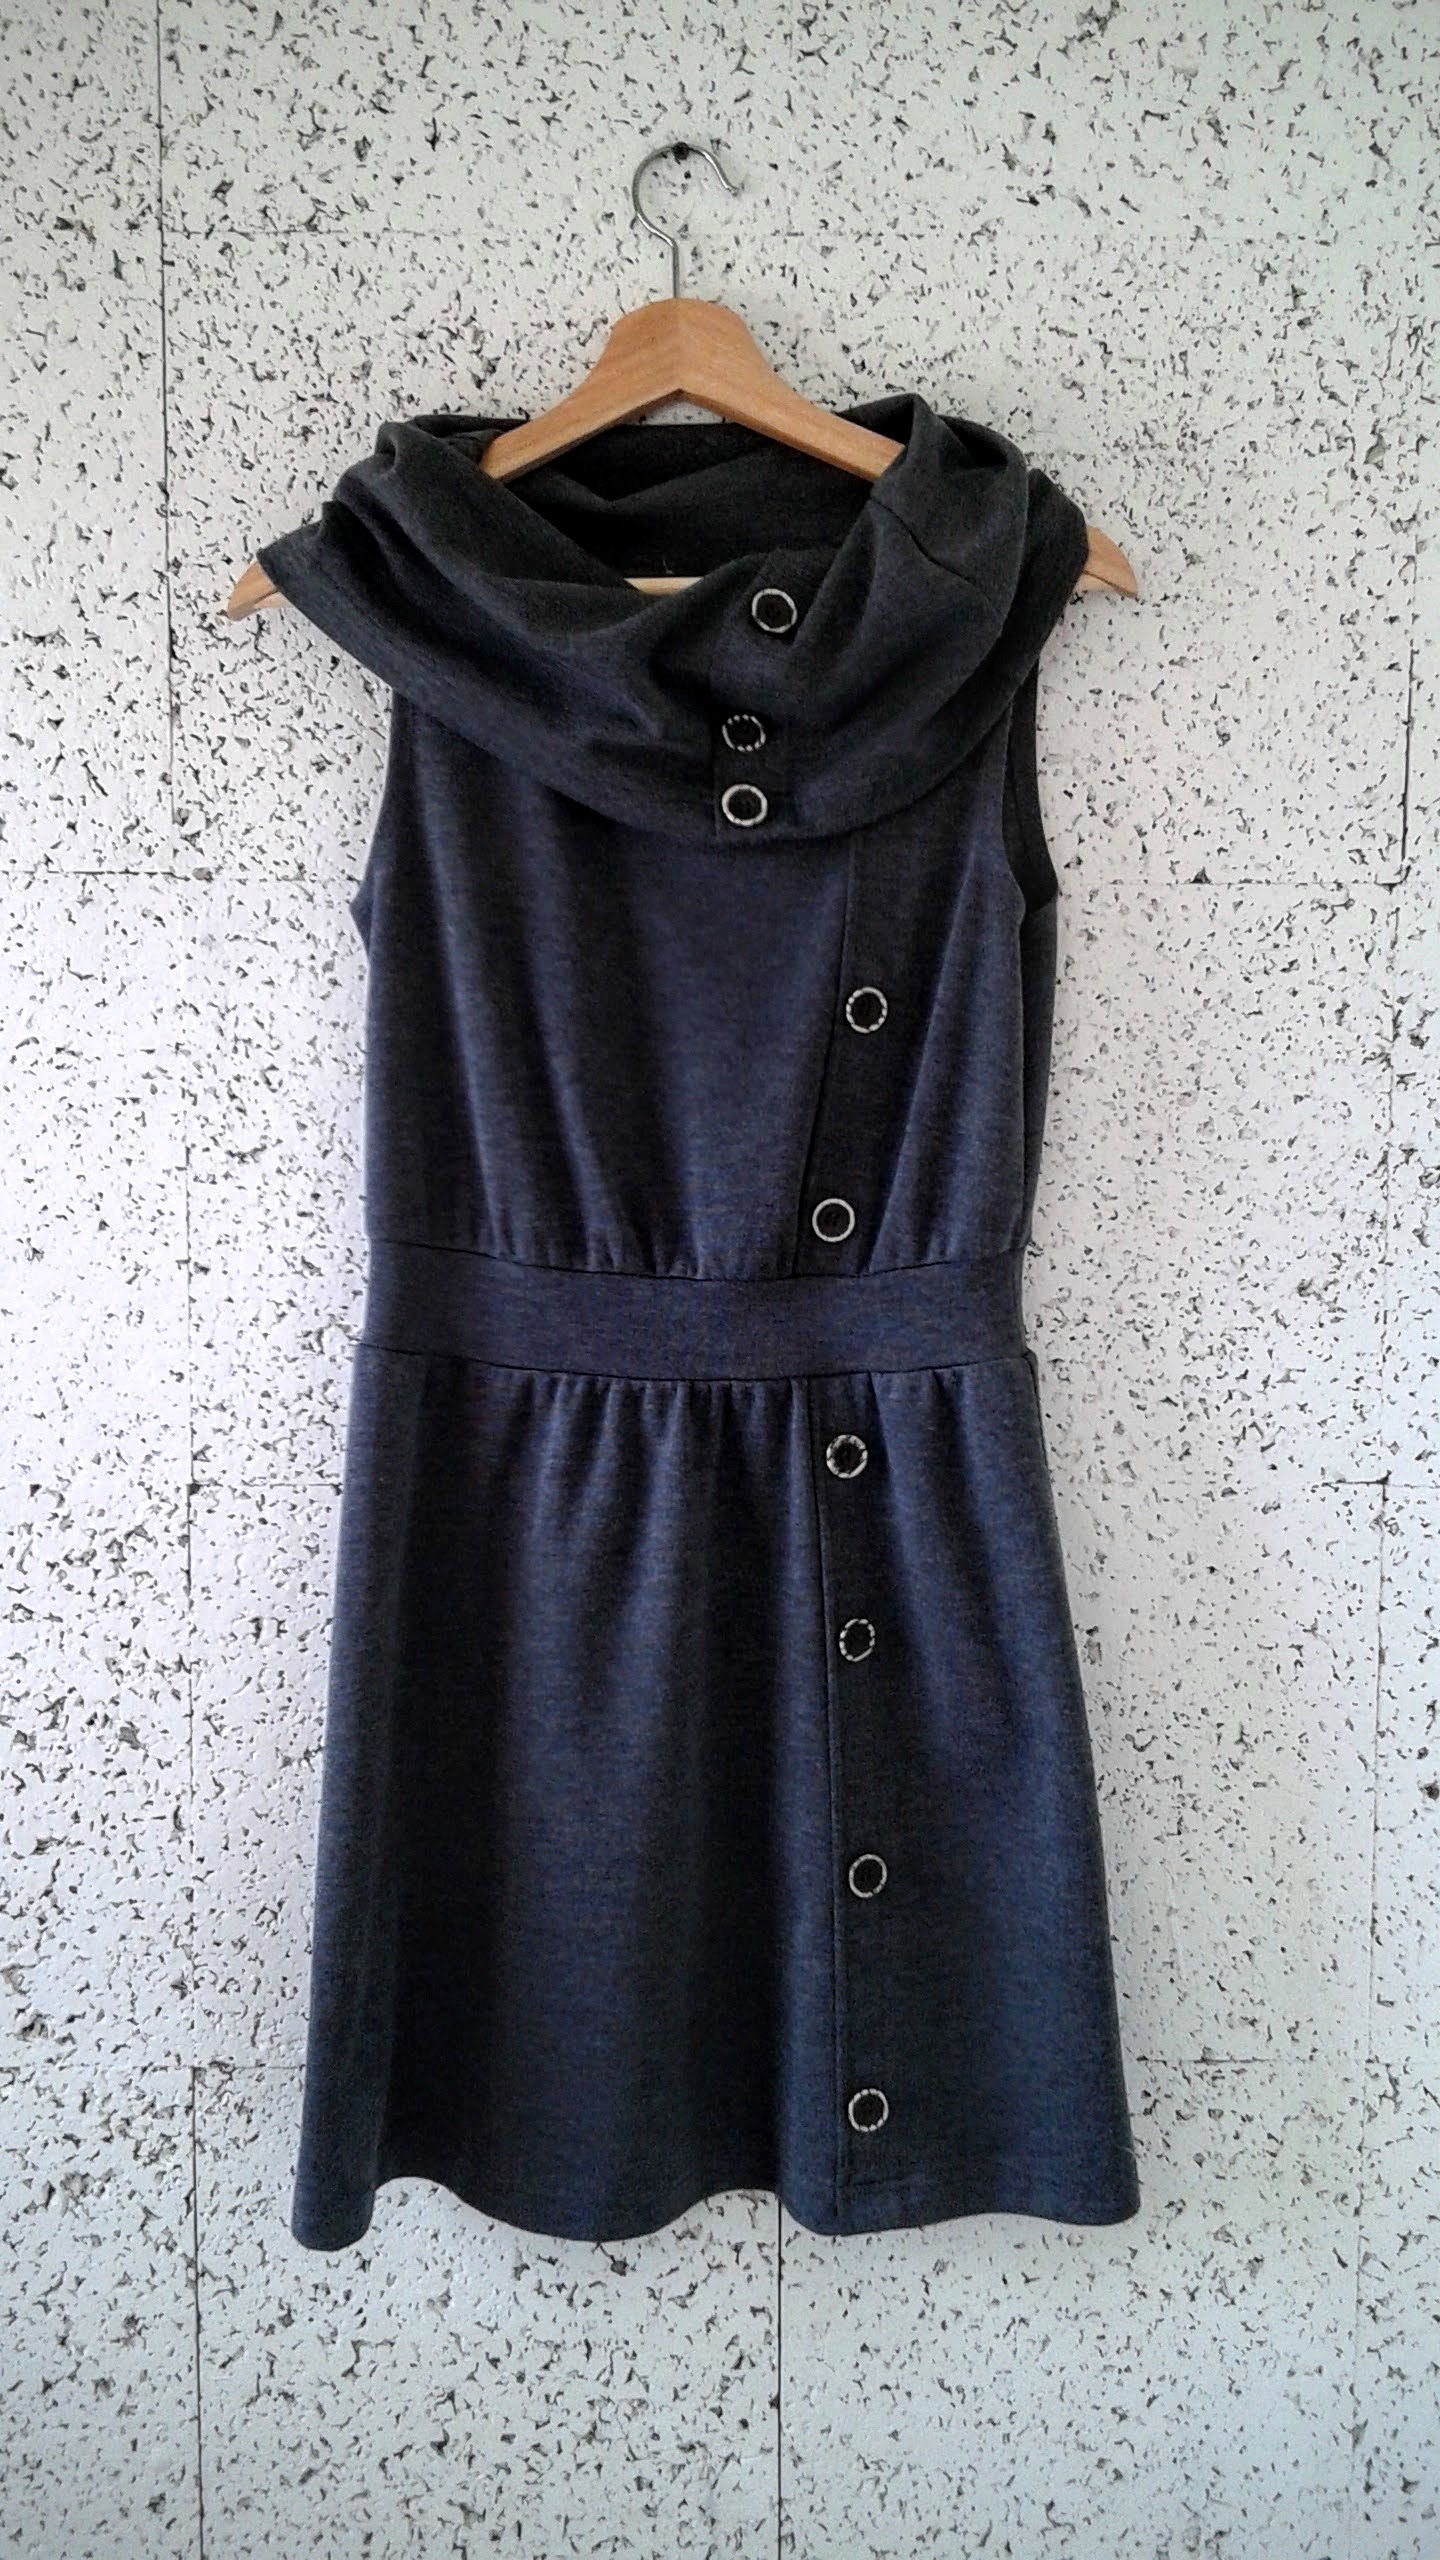 Grey dress; Size S, $26